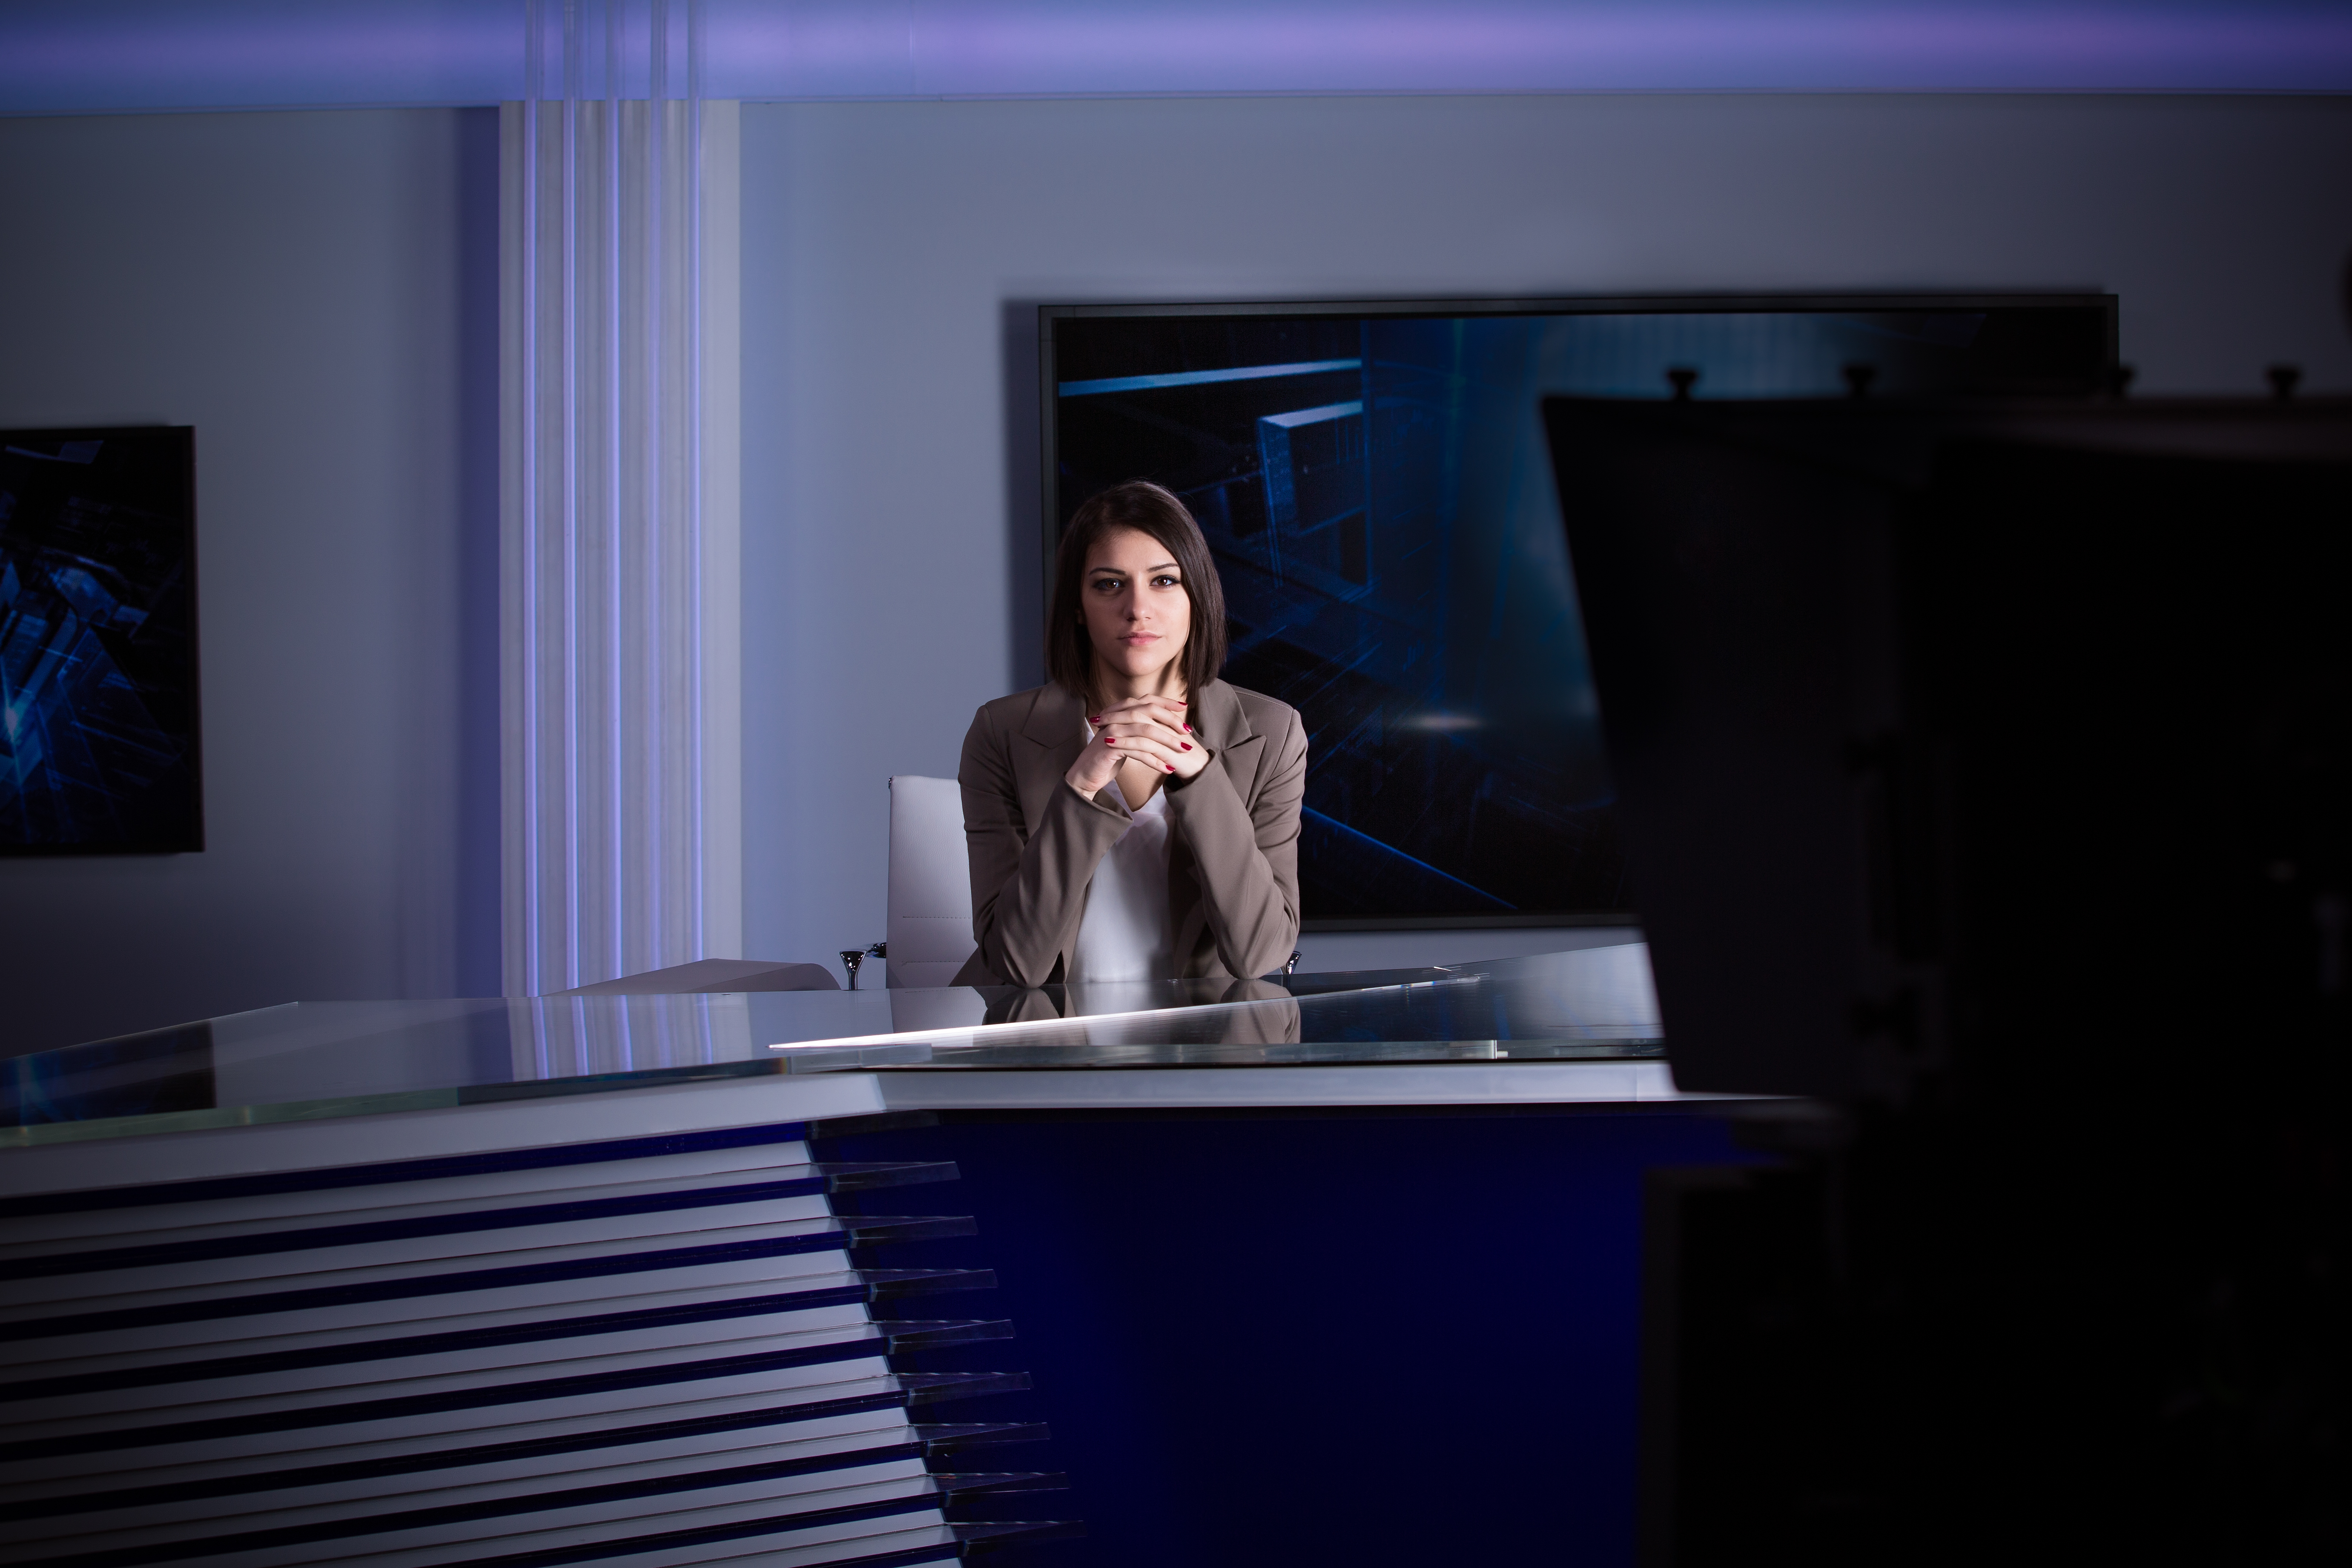 Important Tips for Everyone Looking to Become a News Anchor